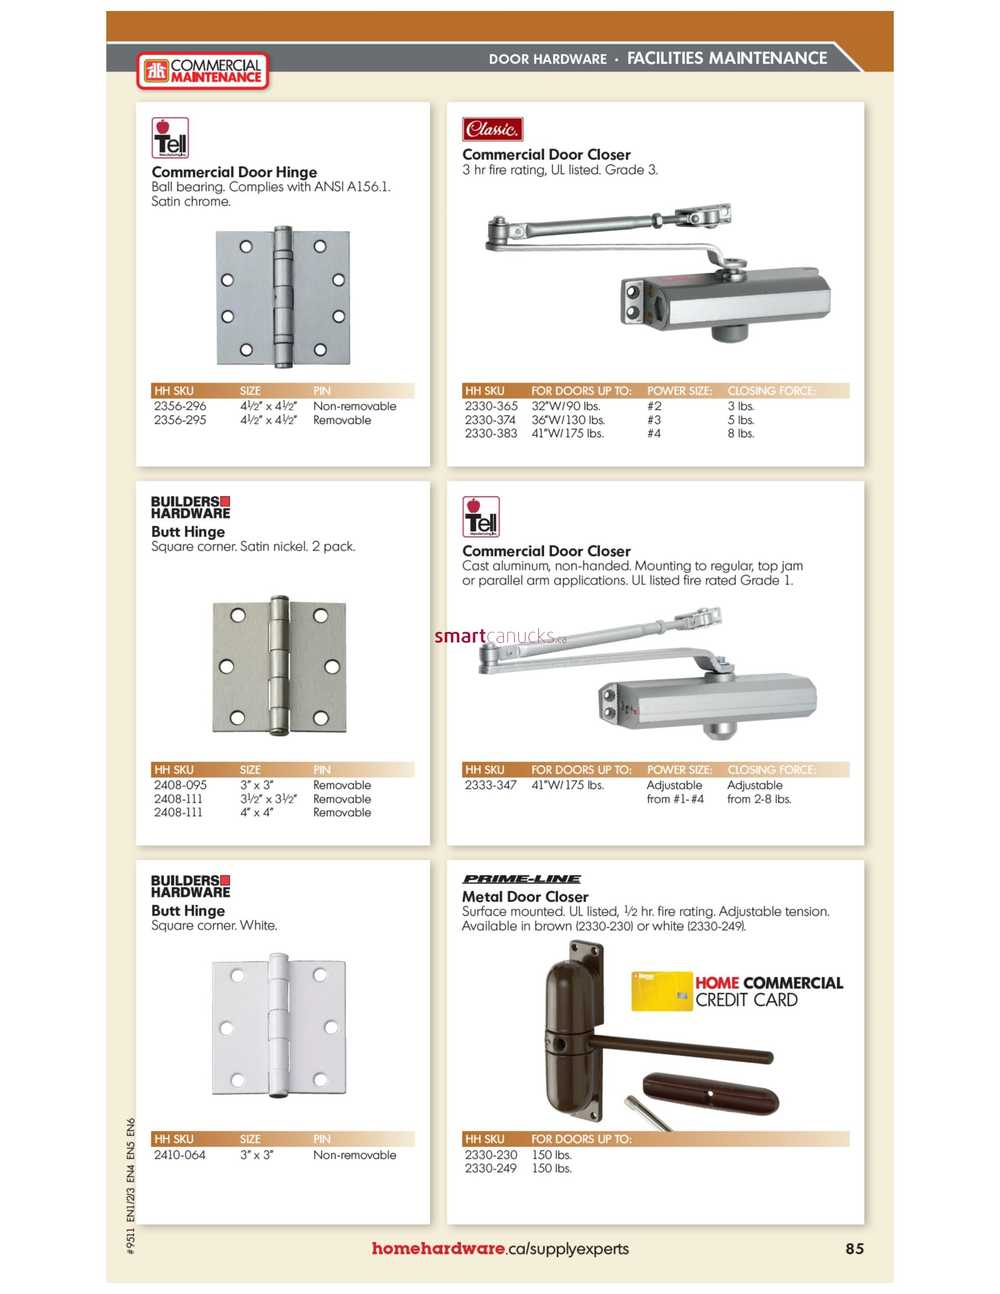 Home Hardware Commercial Maintenance Catalogue